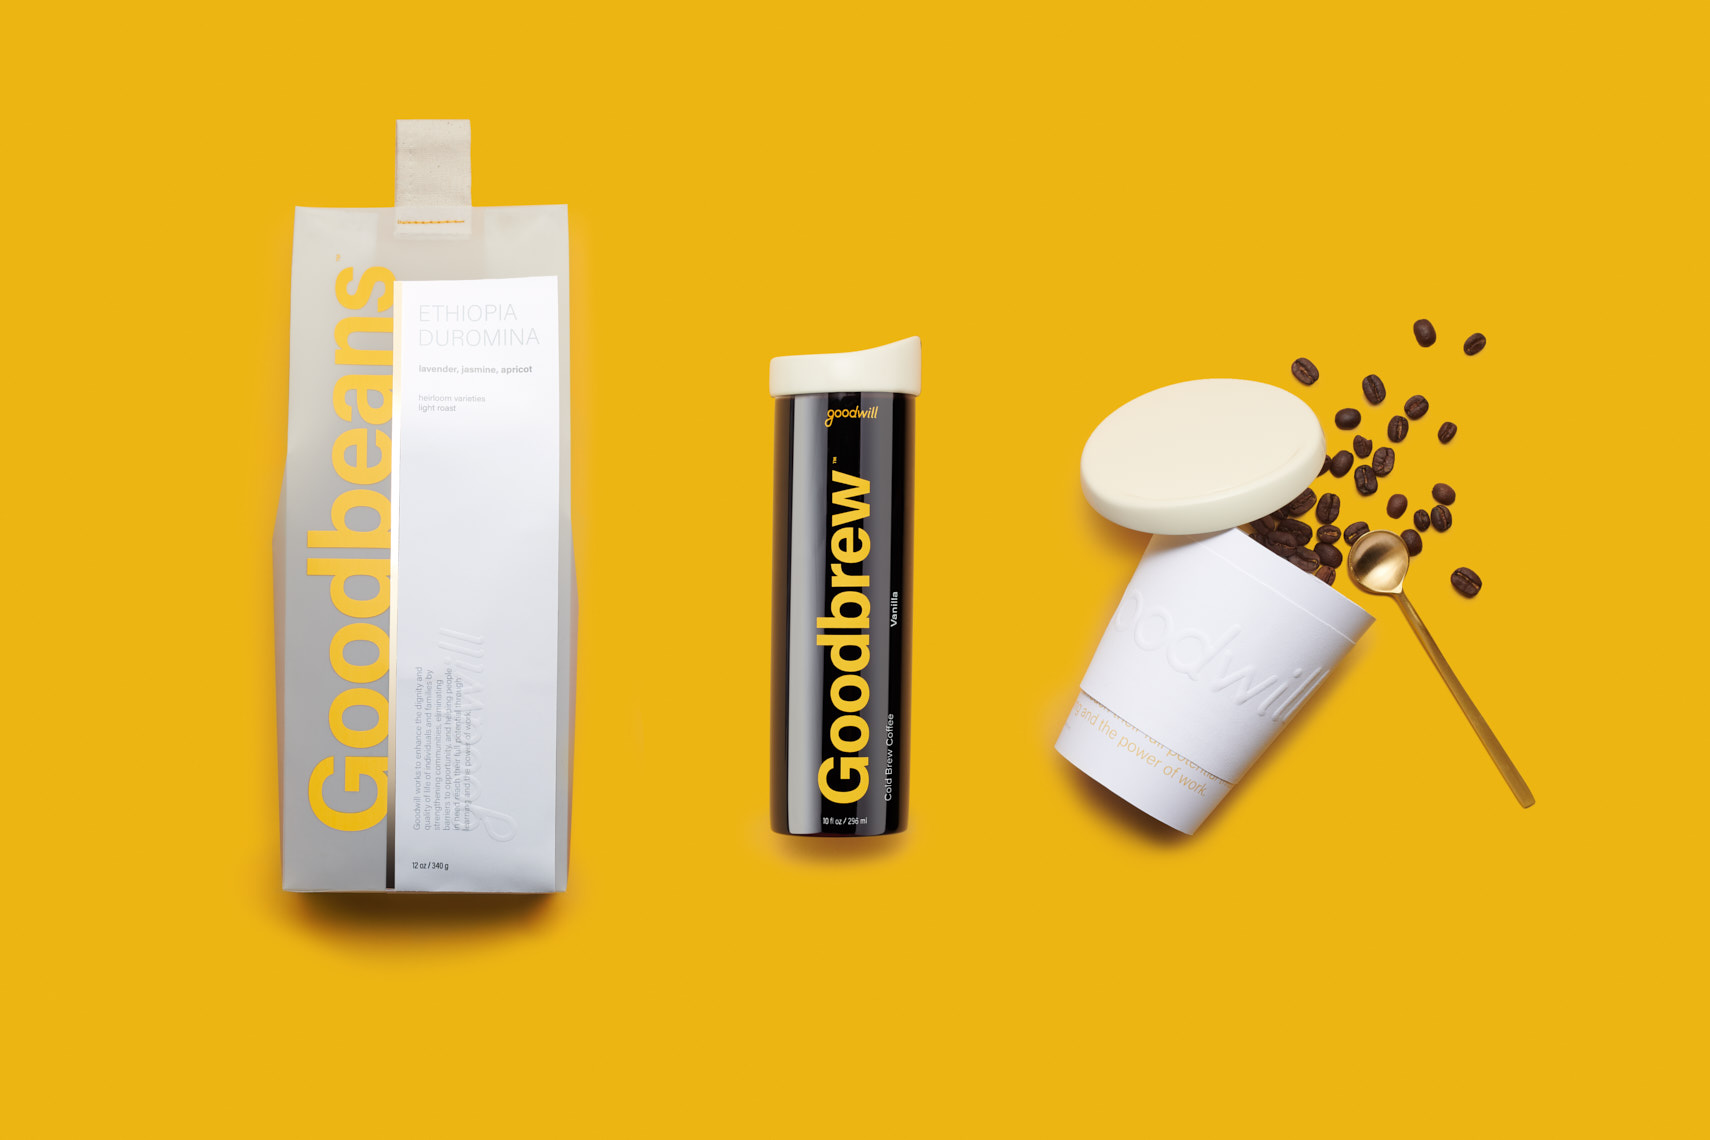 Goodbeans Packaging design on a yellow background | Charlie Sin Photography  | Product Photography